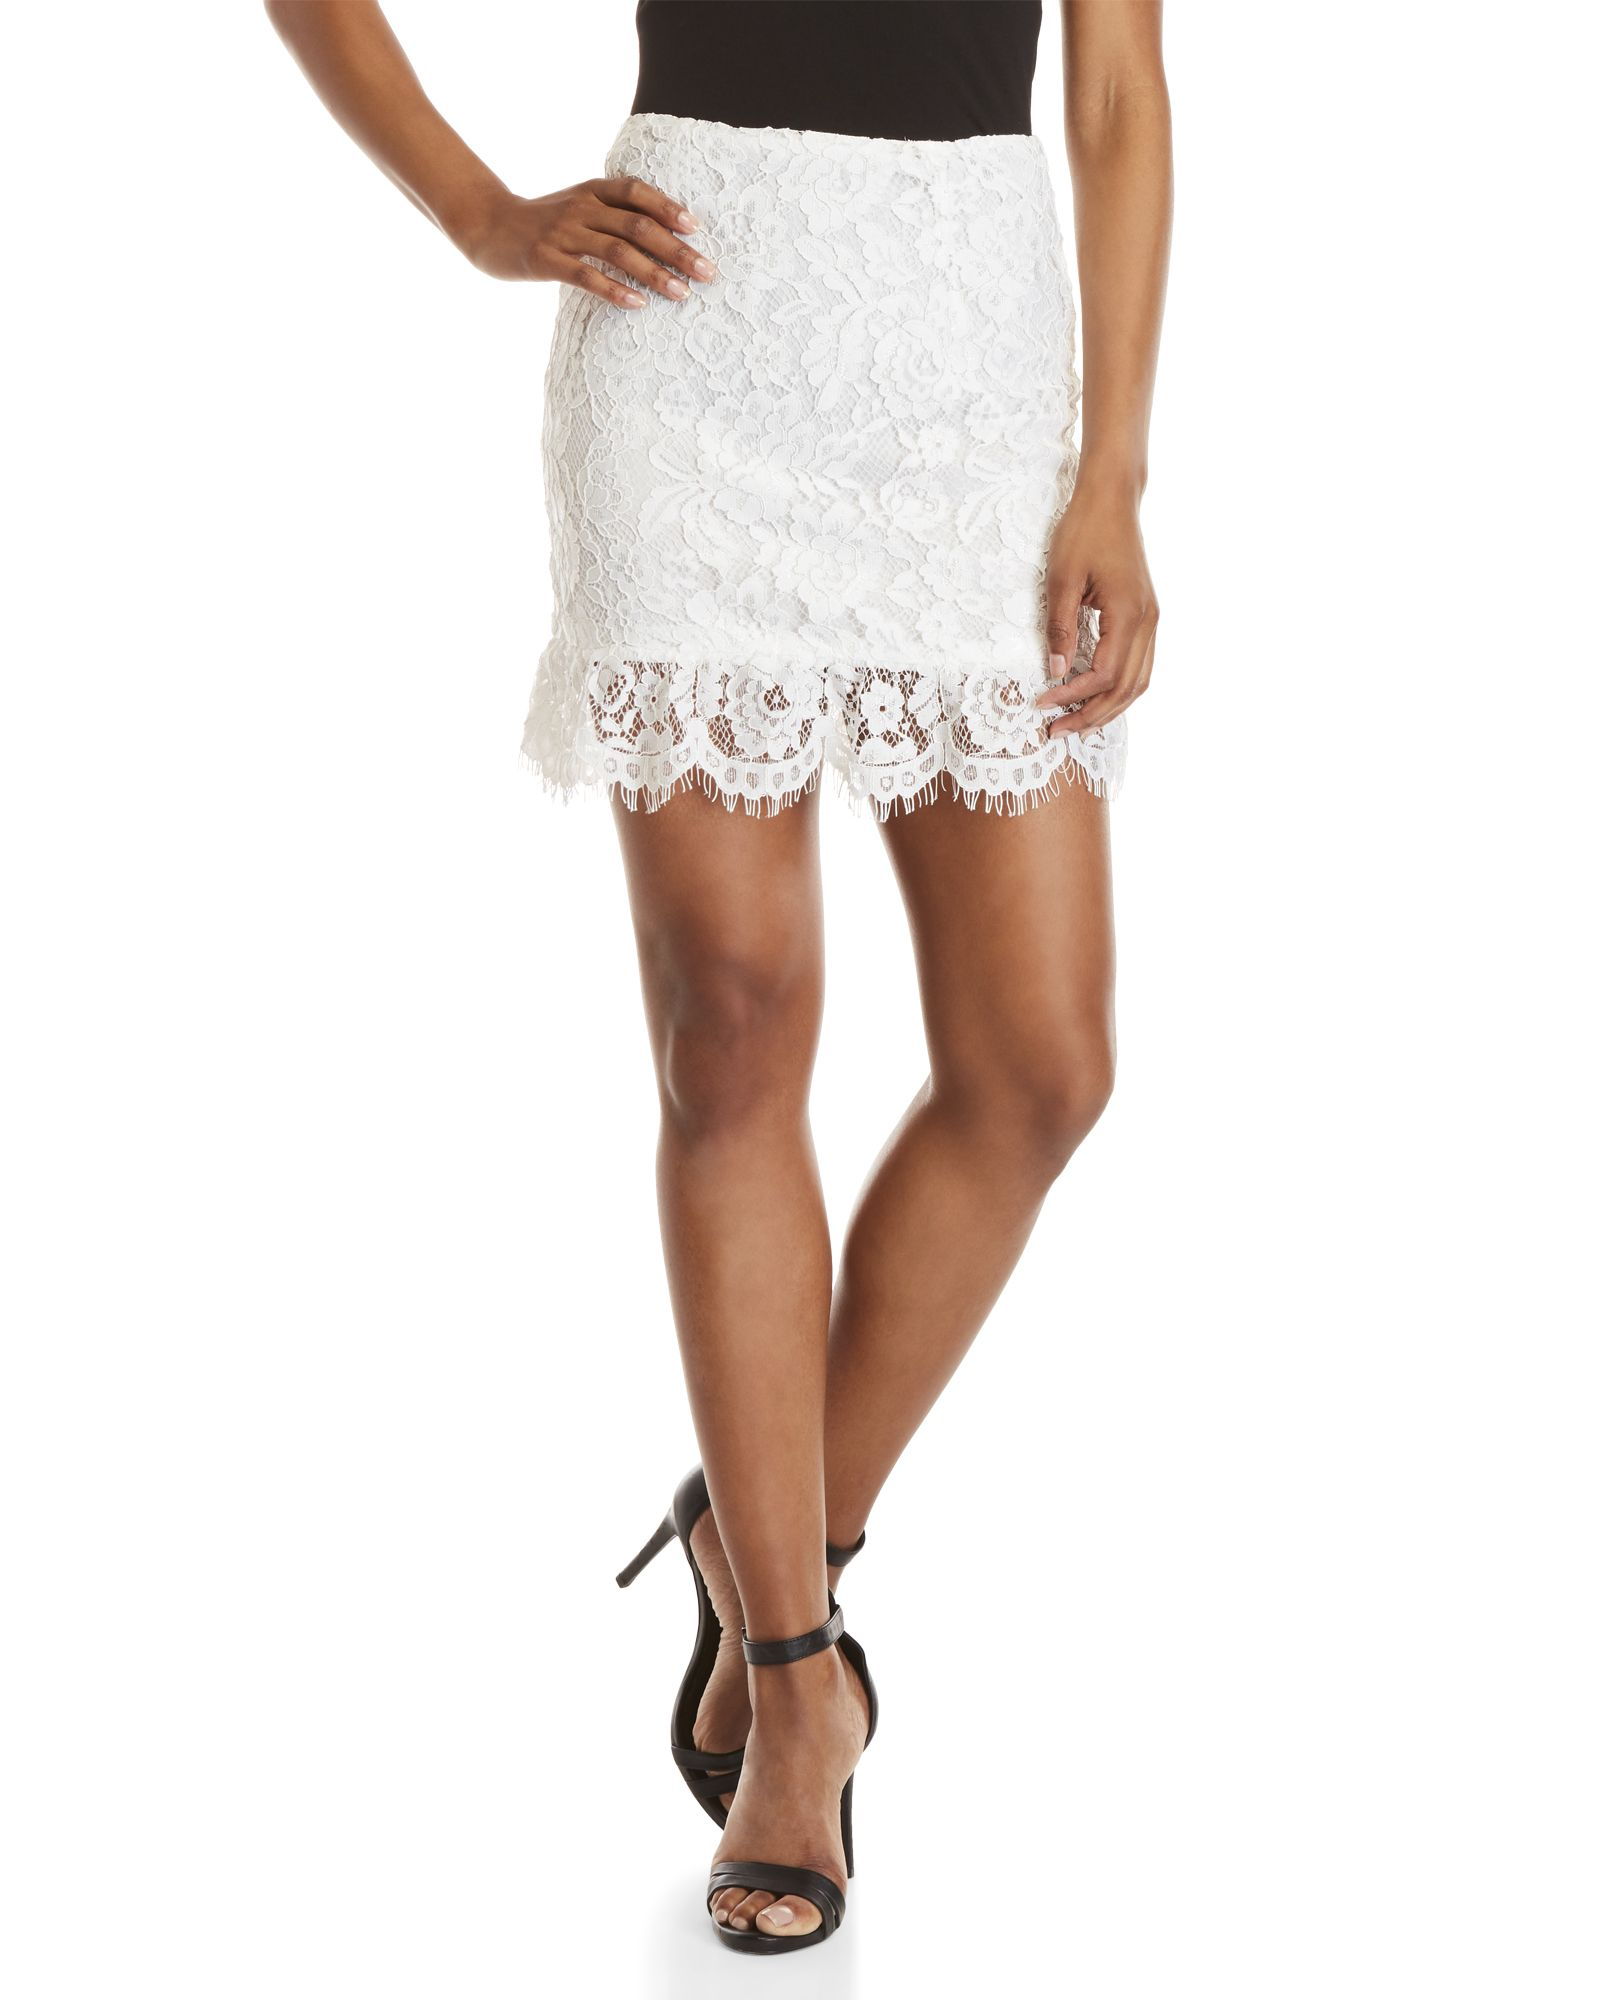 How to white wear lace mini skirt